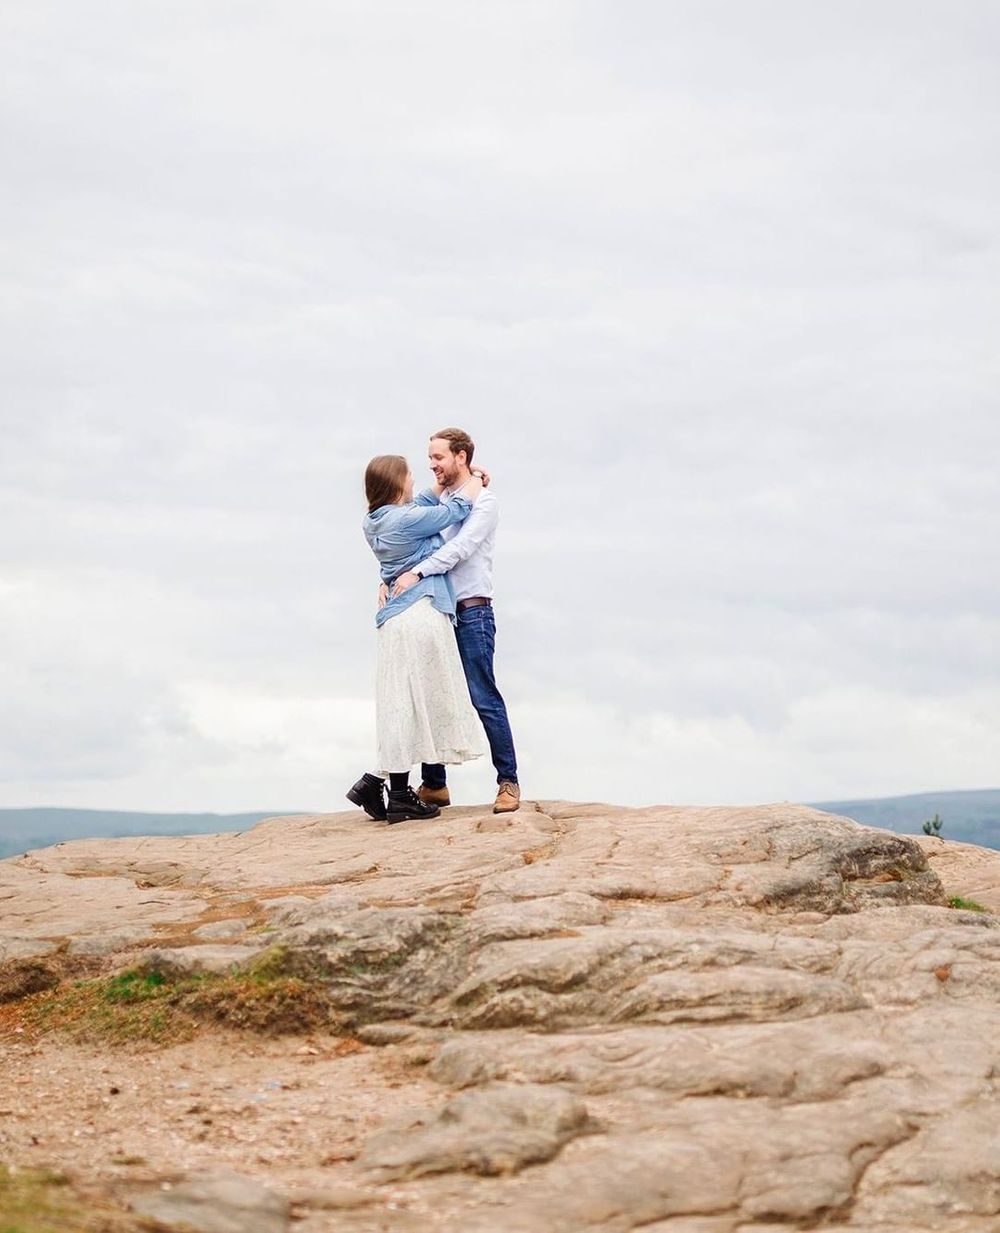 Outdoor forest engagement shoot for Pimhill barn wedding photography couple on a mountain top